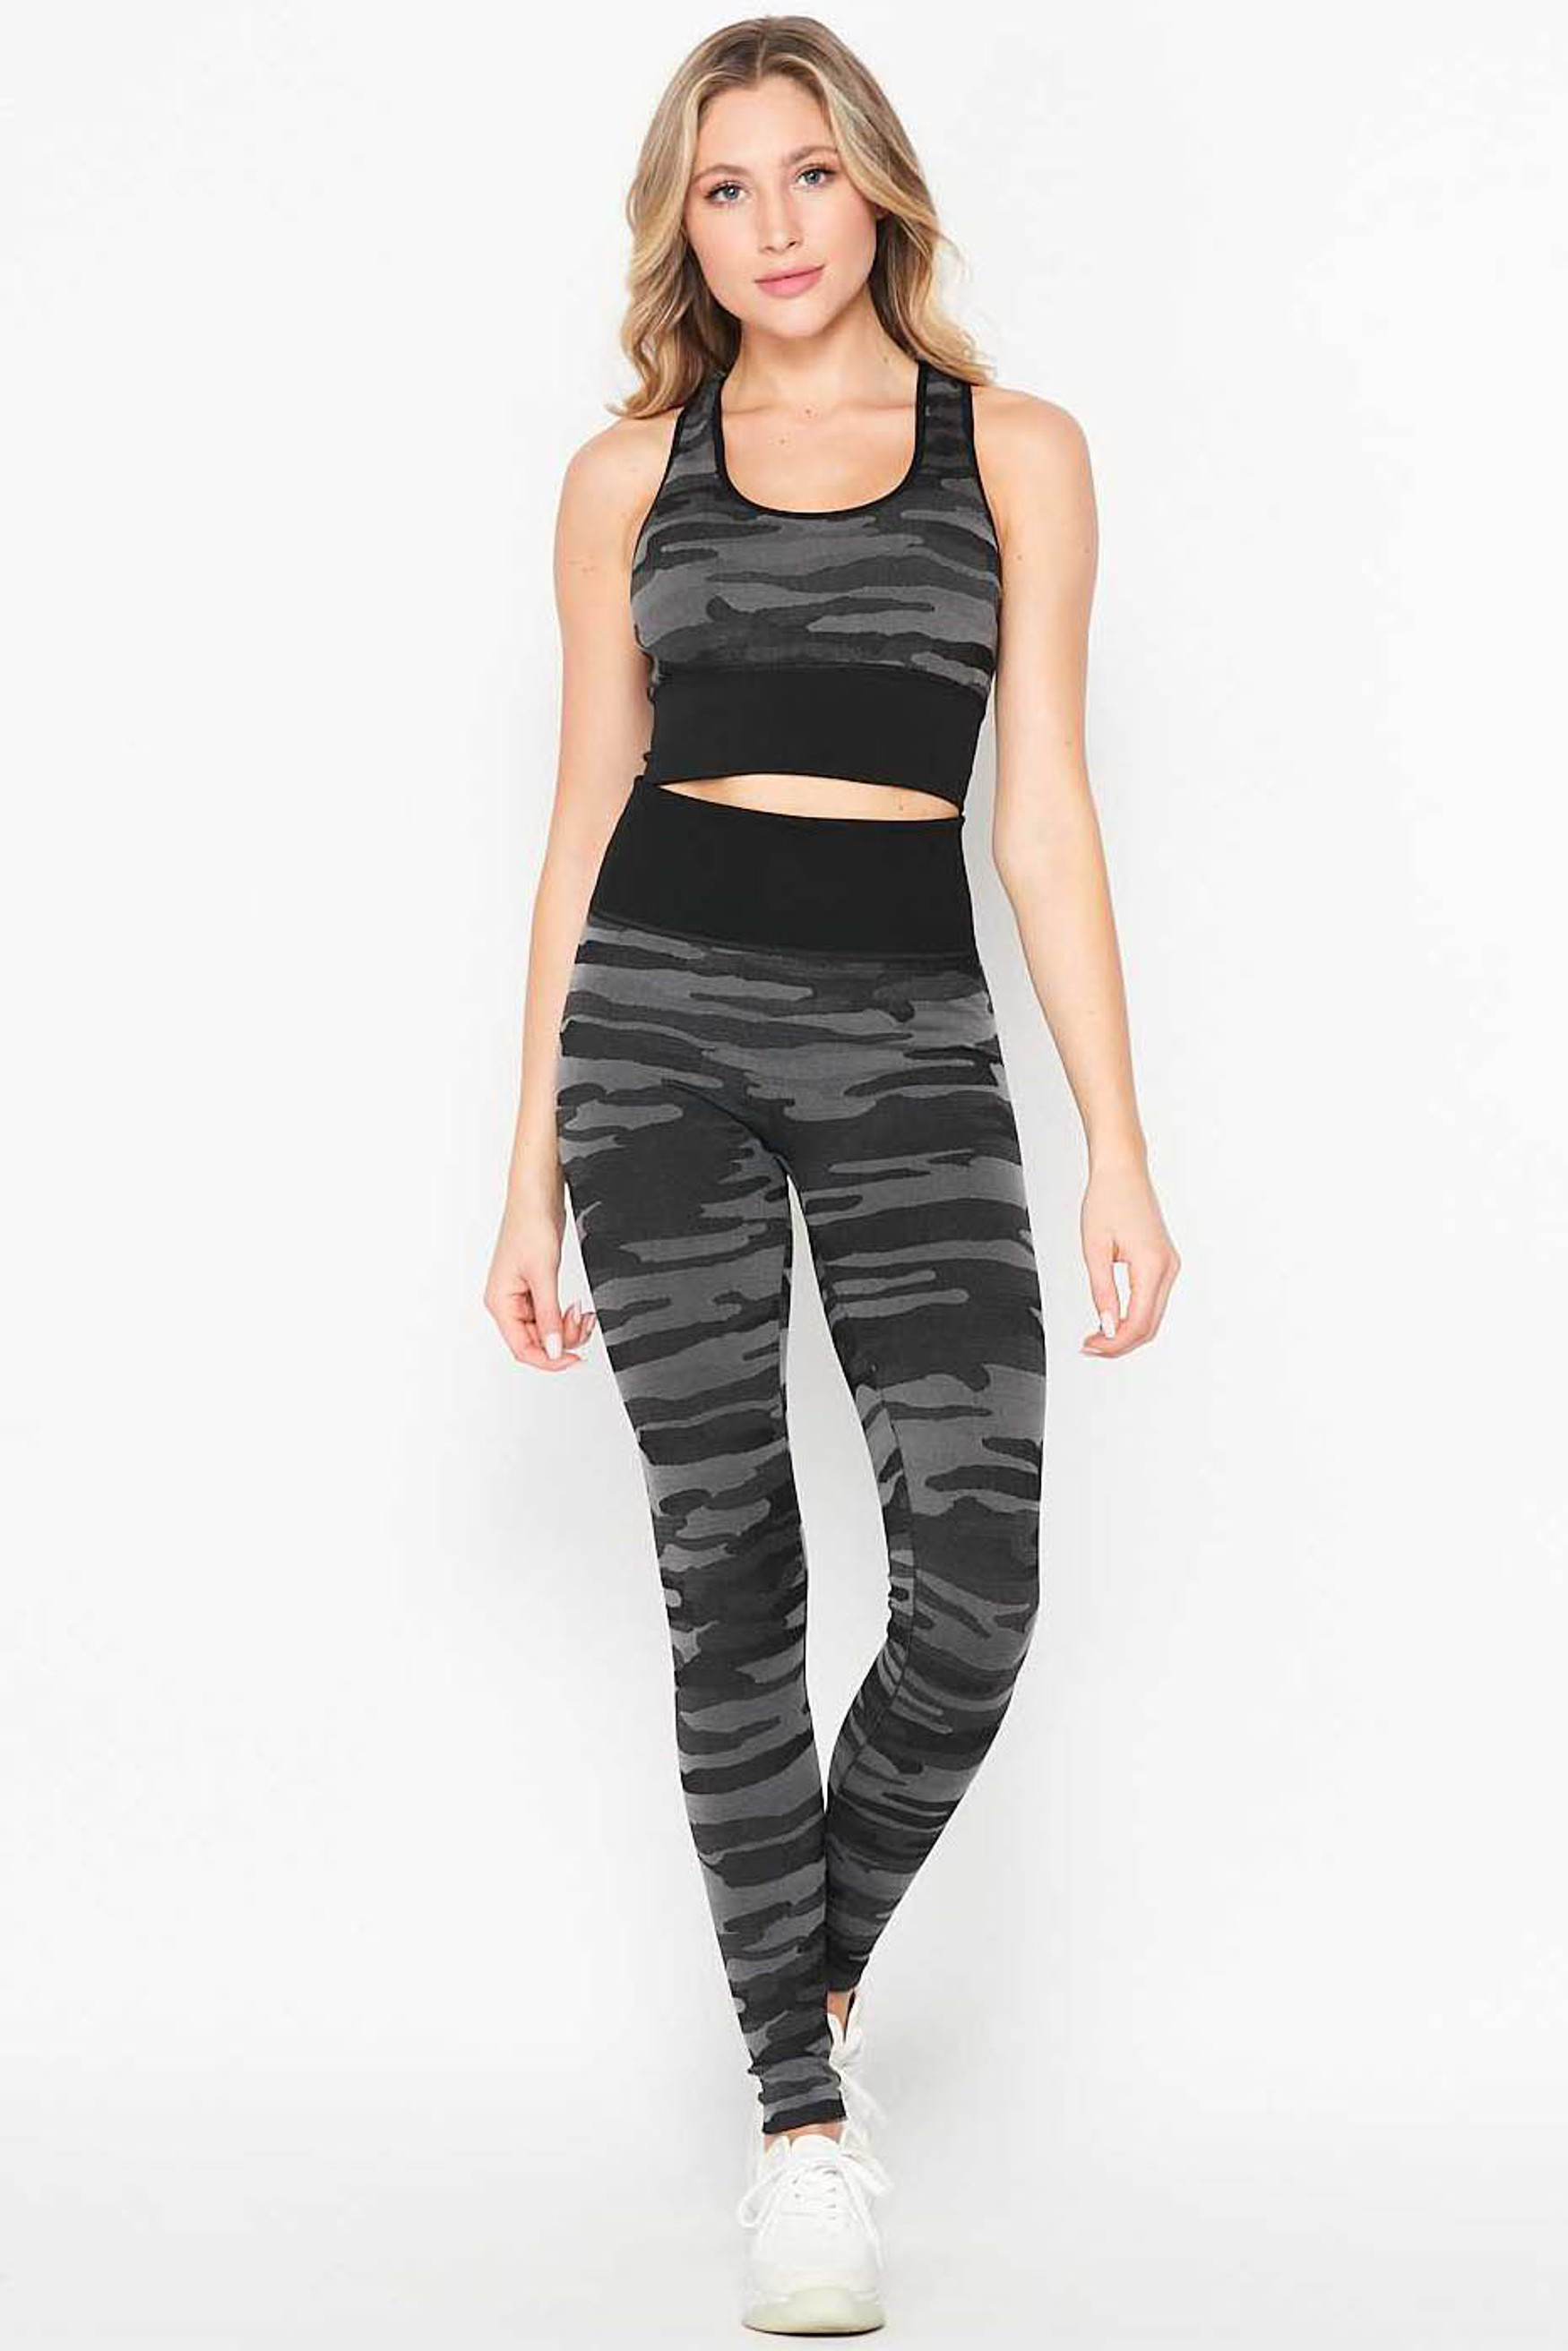 2 Piece Seamless Charcoal Camouflage Bra Top and Leggings Sport Set